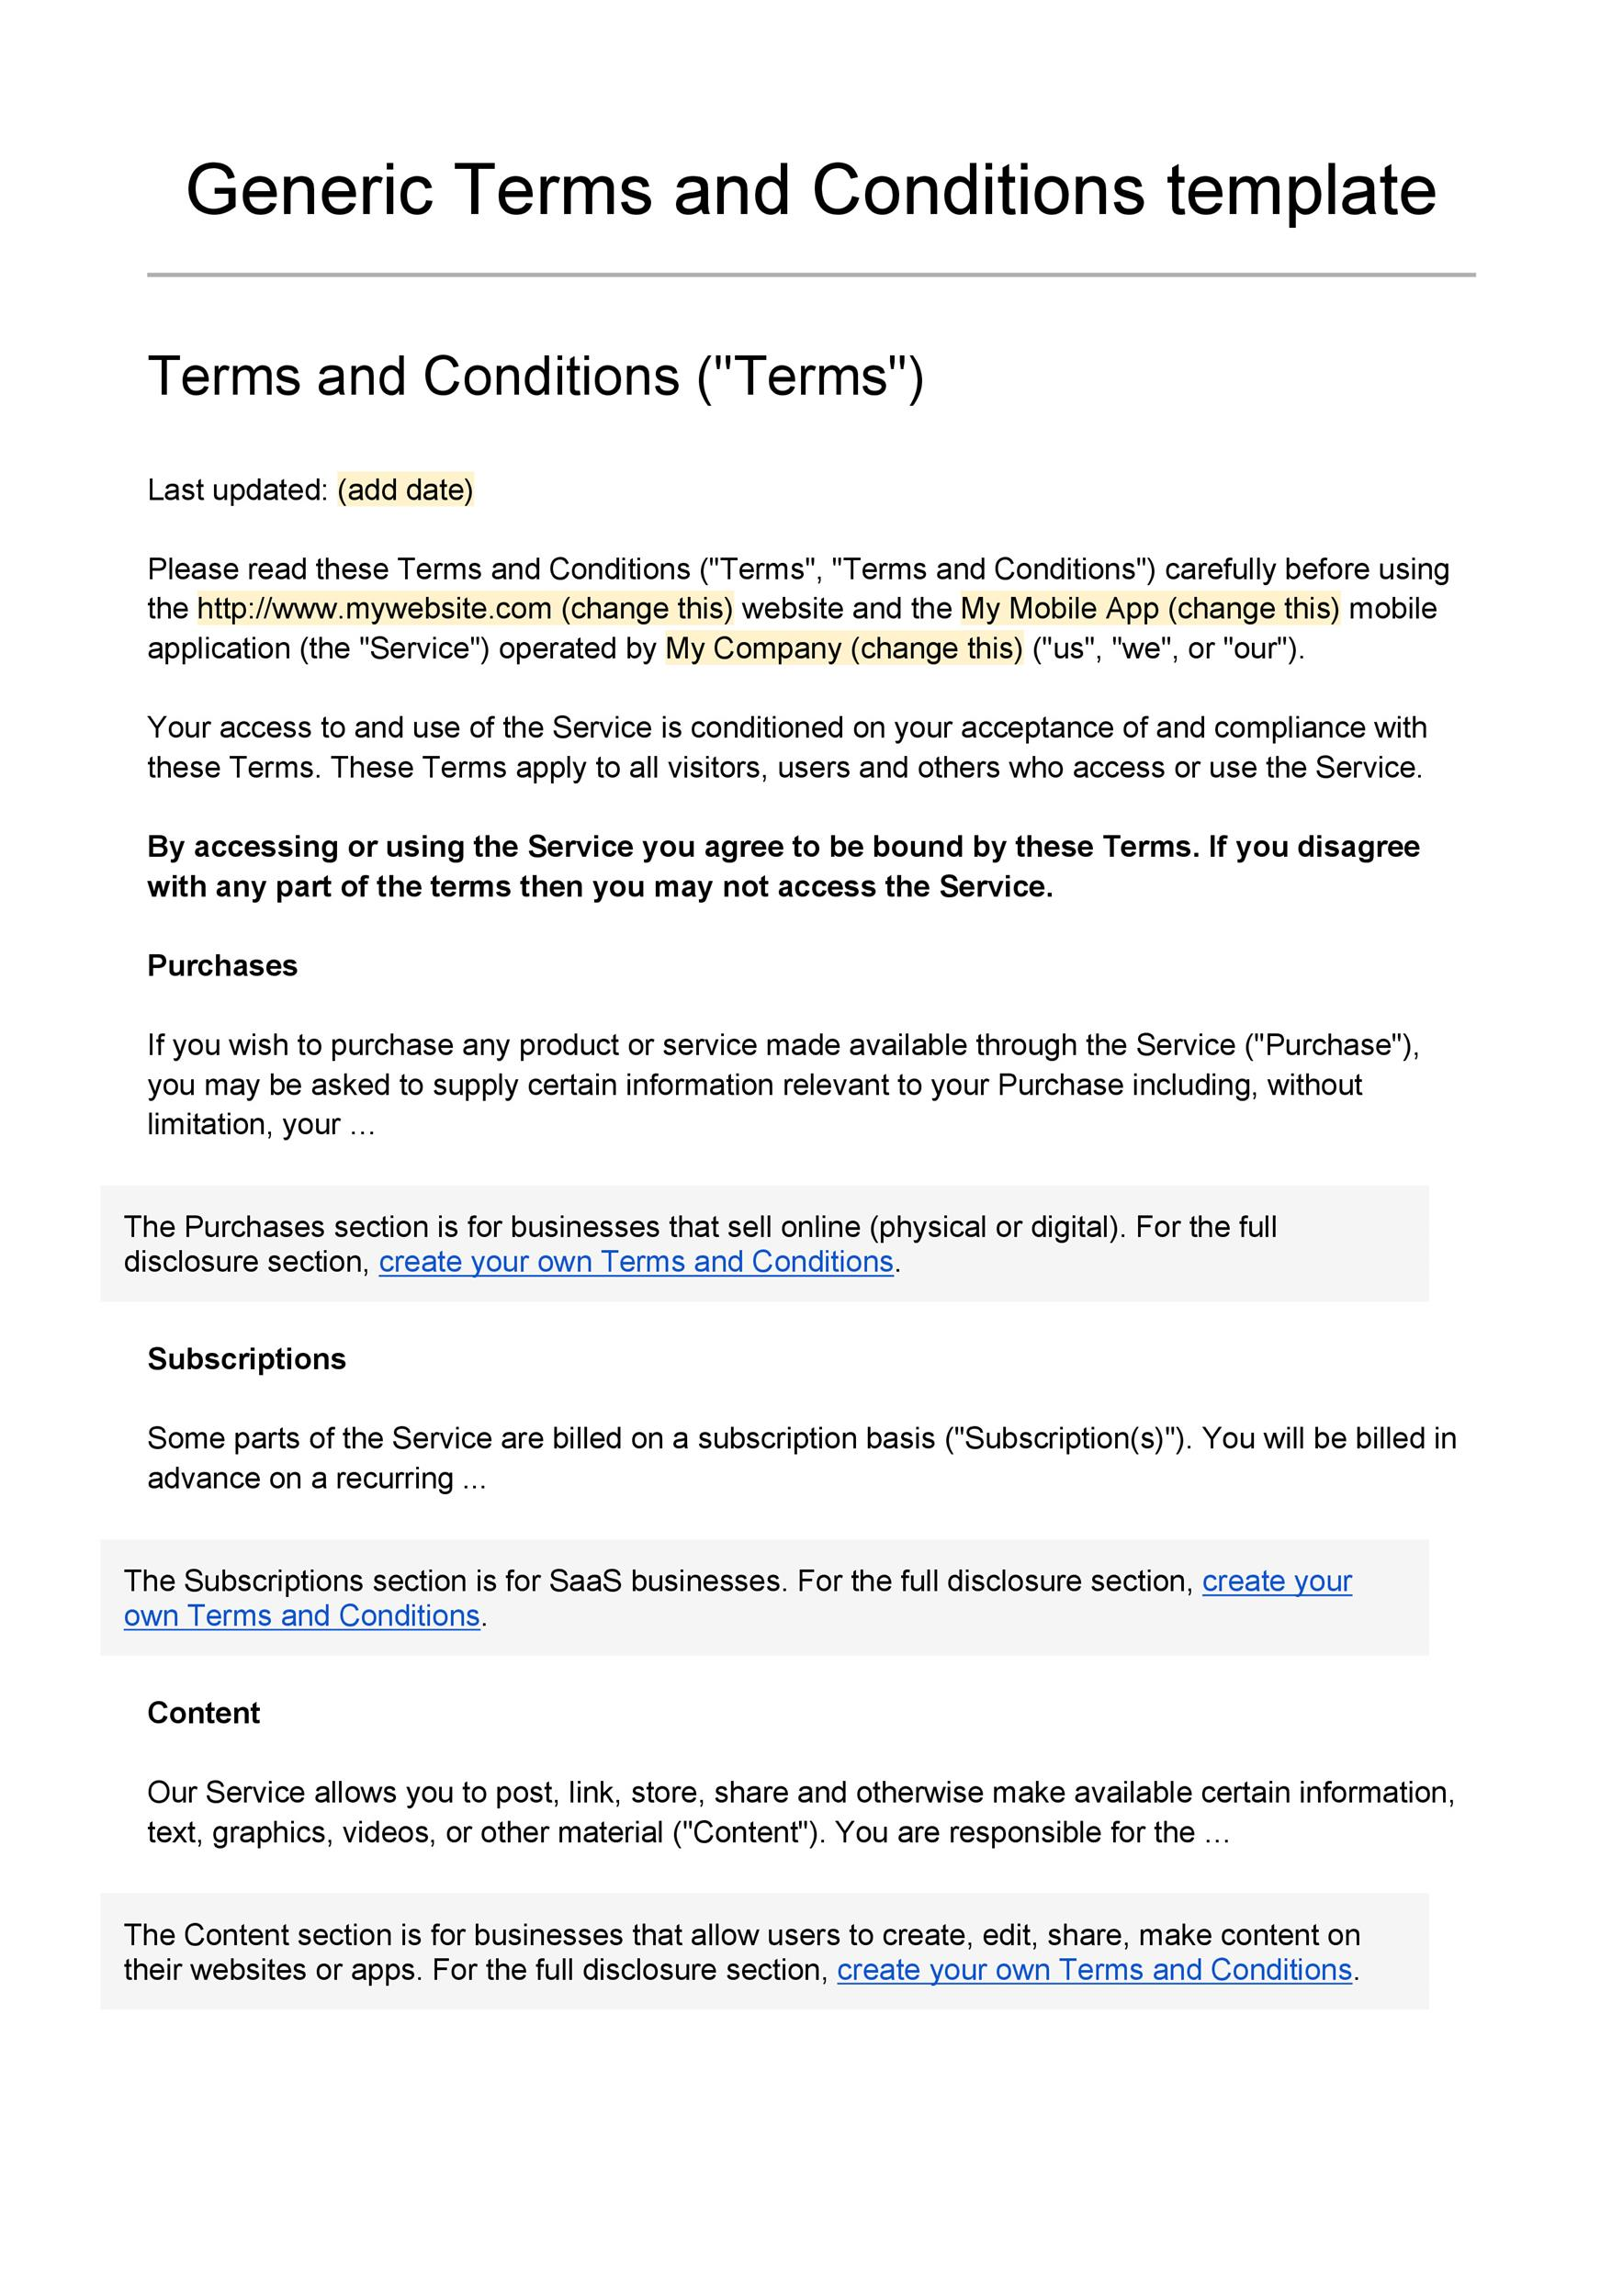 40 free terms and conditions templates for any website template lab free terms and conditions template 01 friedricerecipe